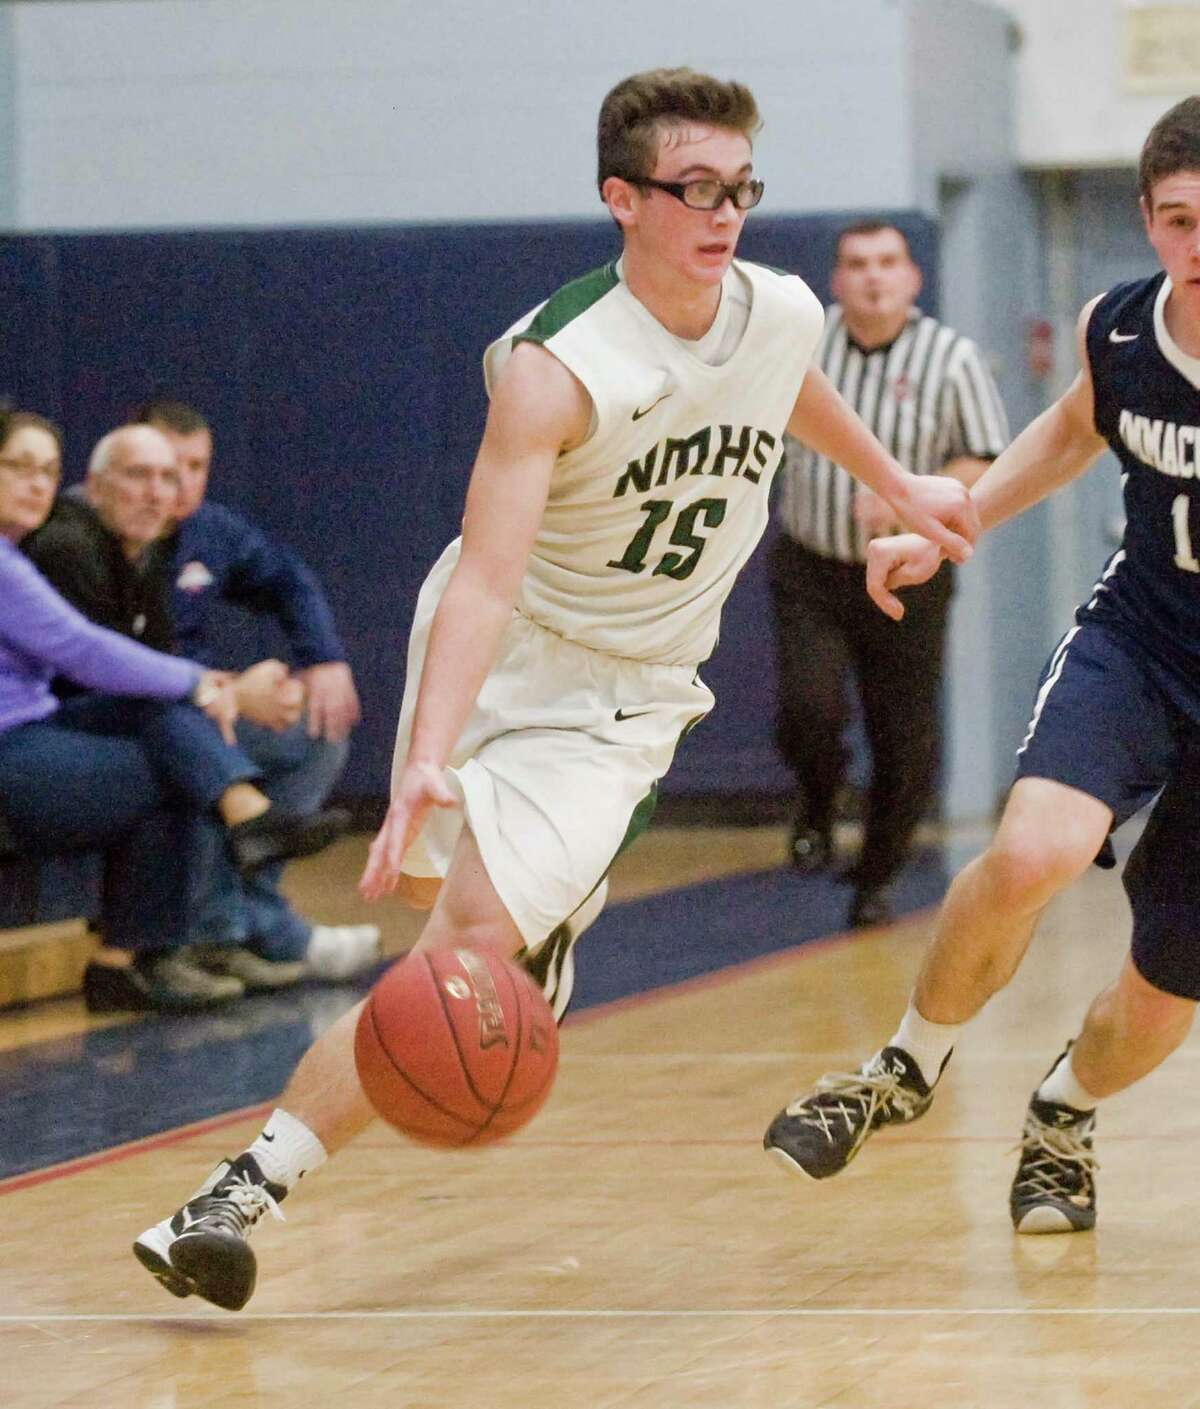 FILE PHOTO: New Milford High School's Max Vaughey brings the ball up the court in the Candlewood Classic boys basketball tournament against Immaculate High School, played at New Fairfield High School. Saturday, Dec. 26, 2015